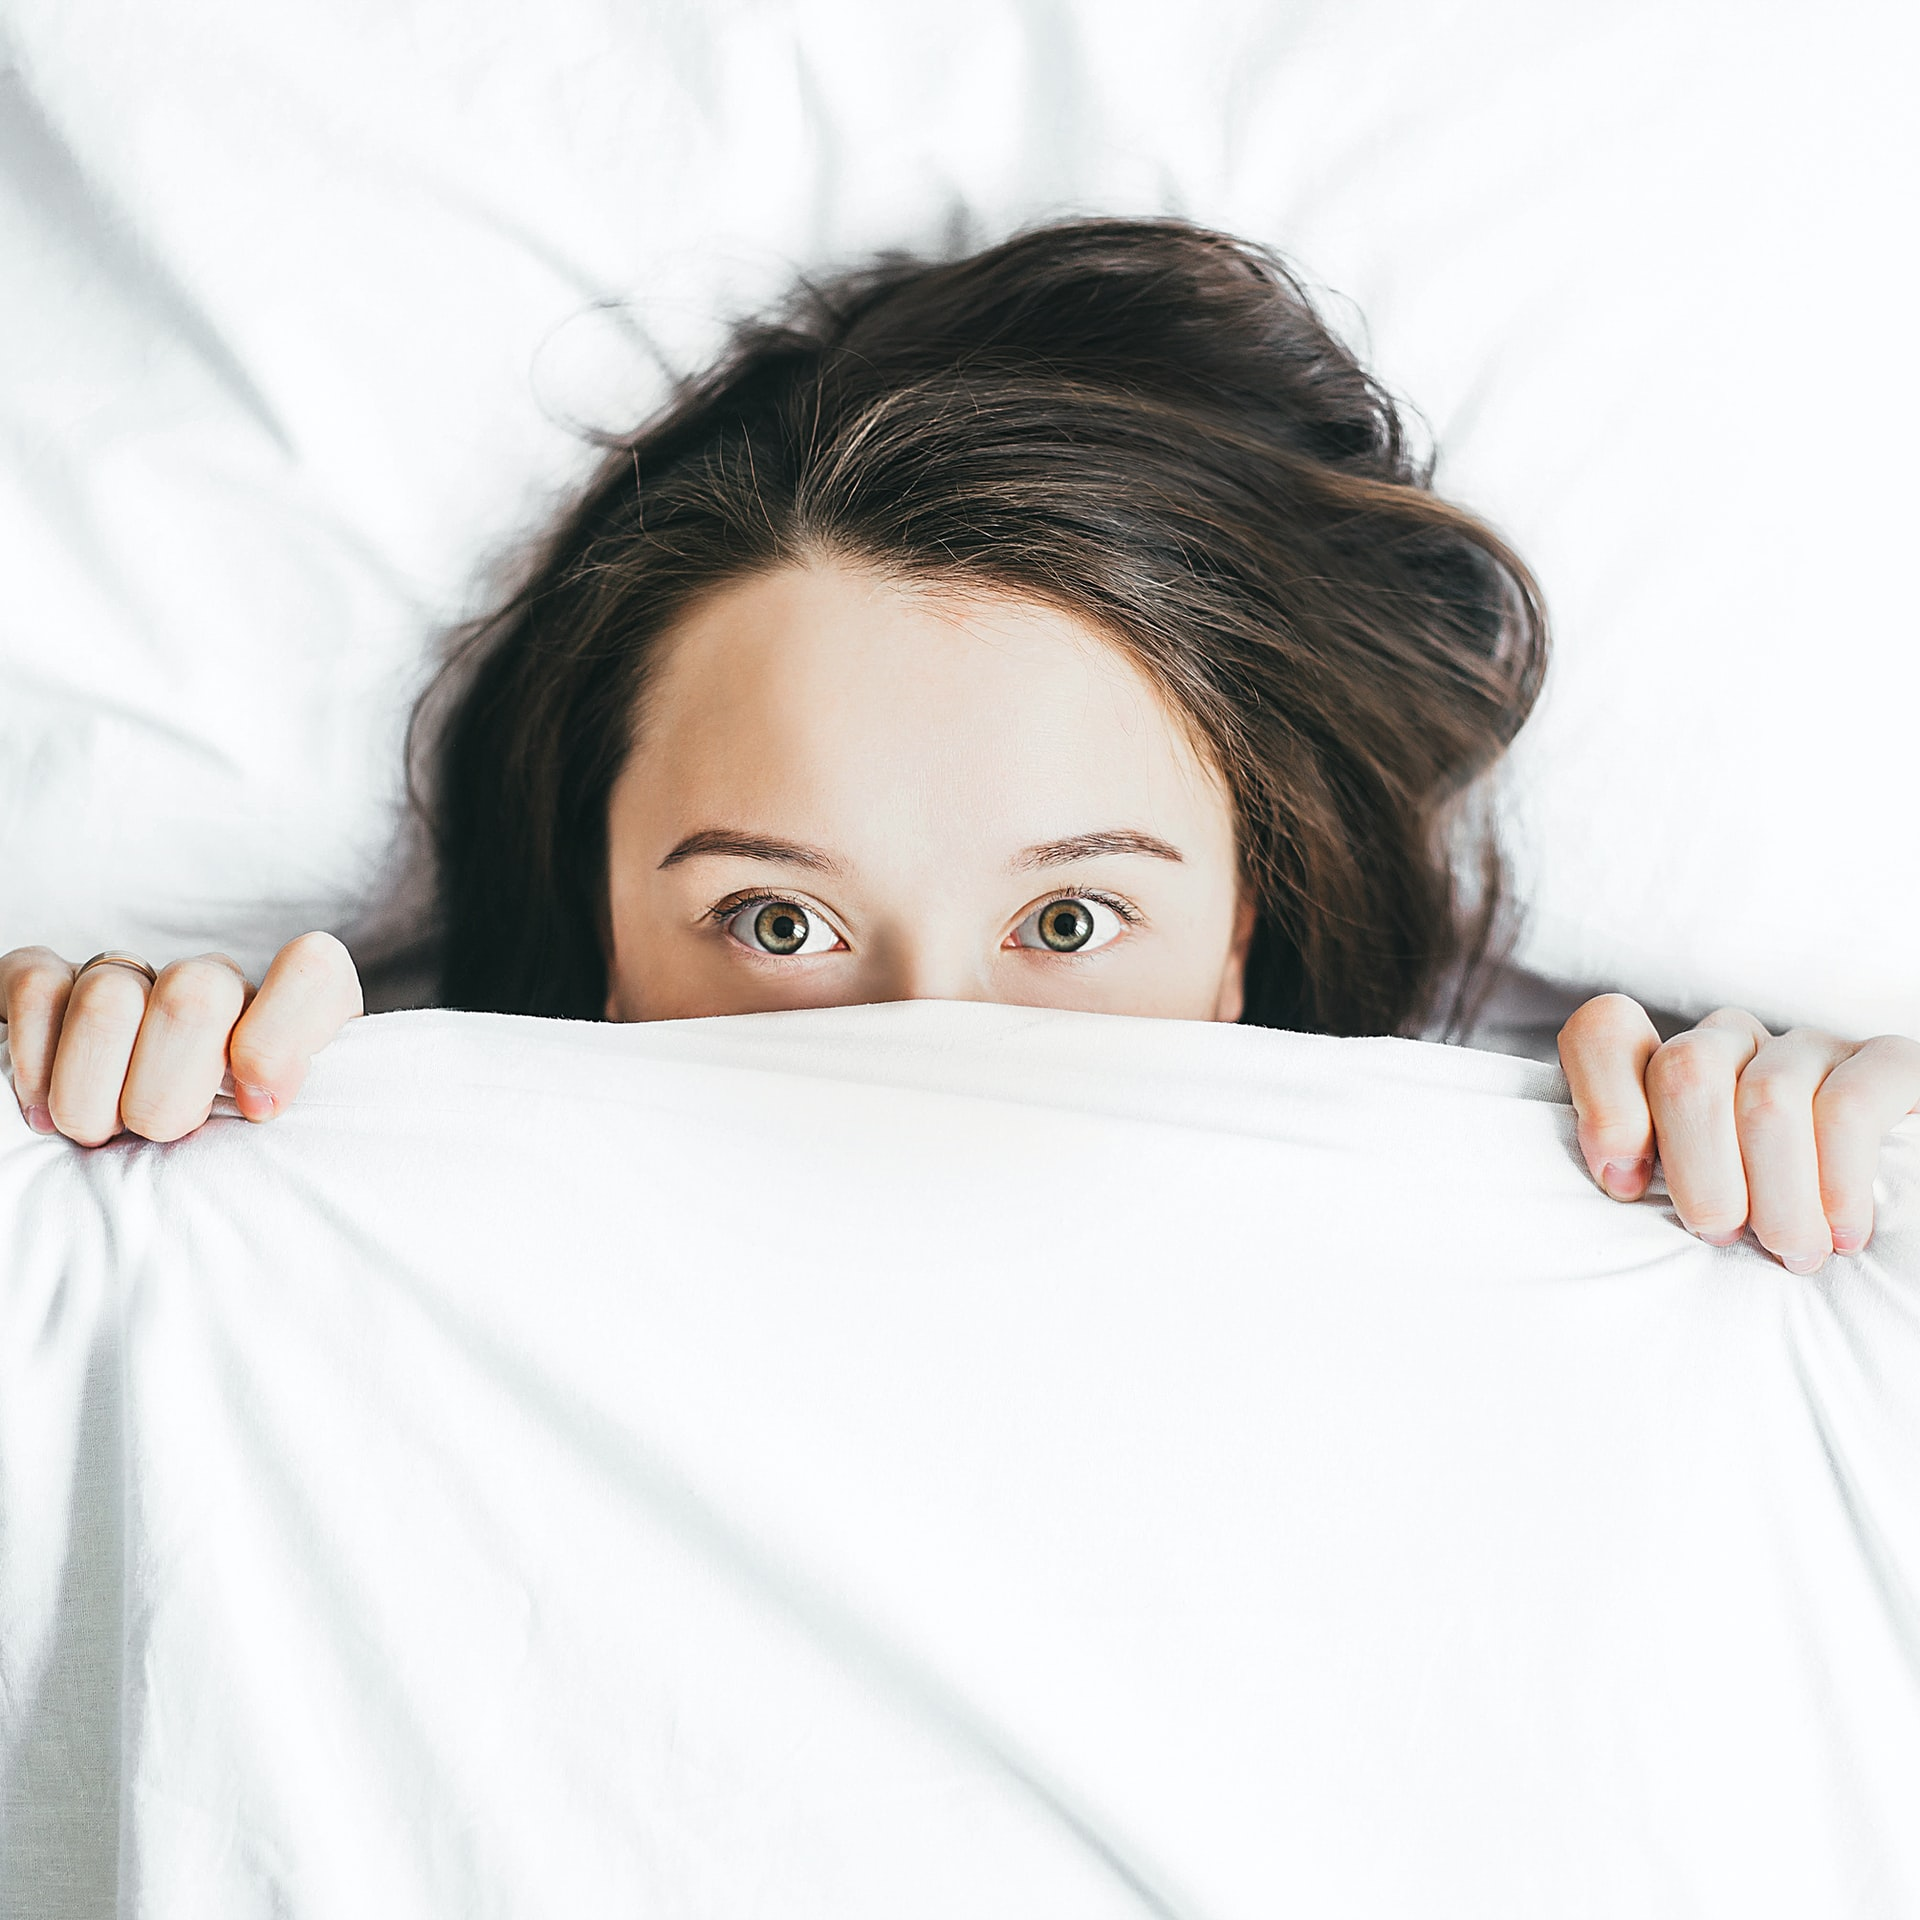 Sleeping Too Little? Too Much? Both Can Be Signs Of Exhaustion